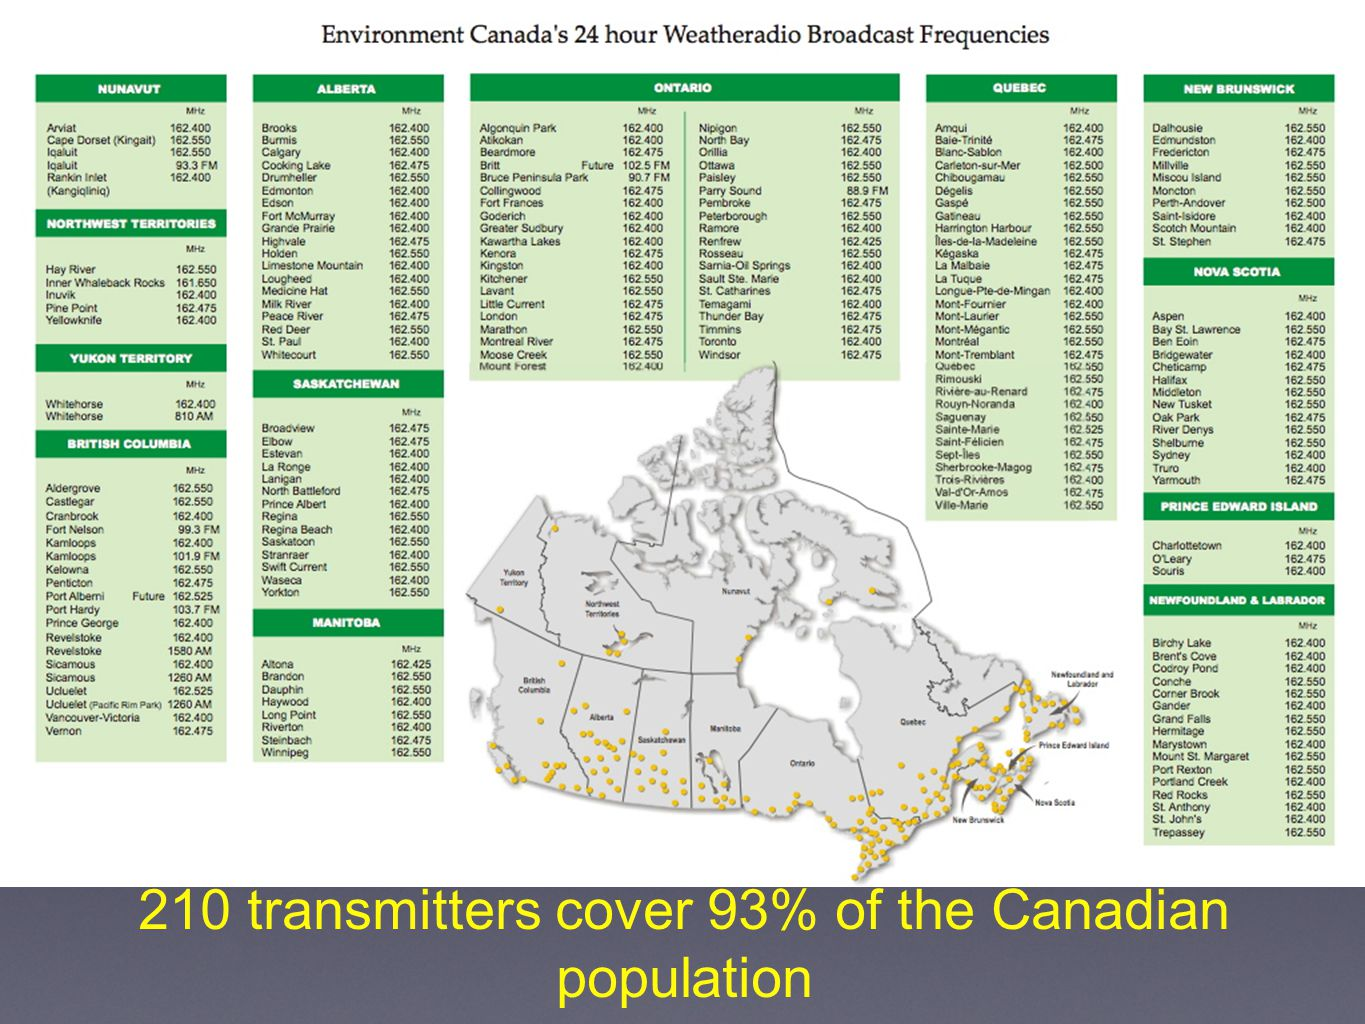 210 transmitters cover 93% of the Canadian population